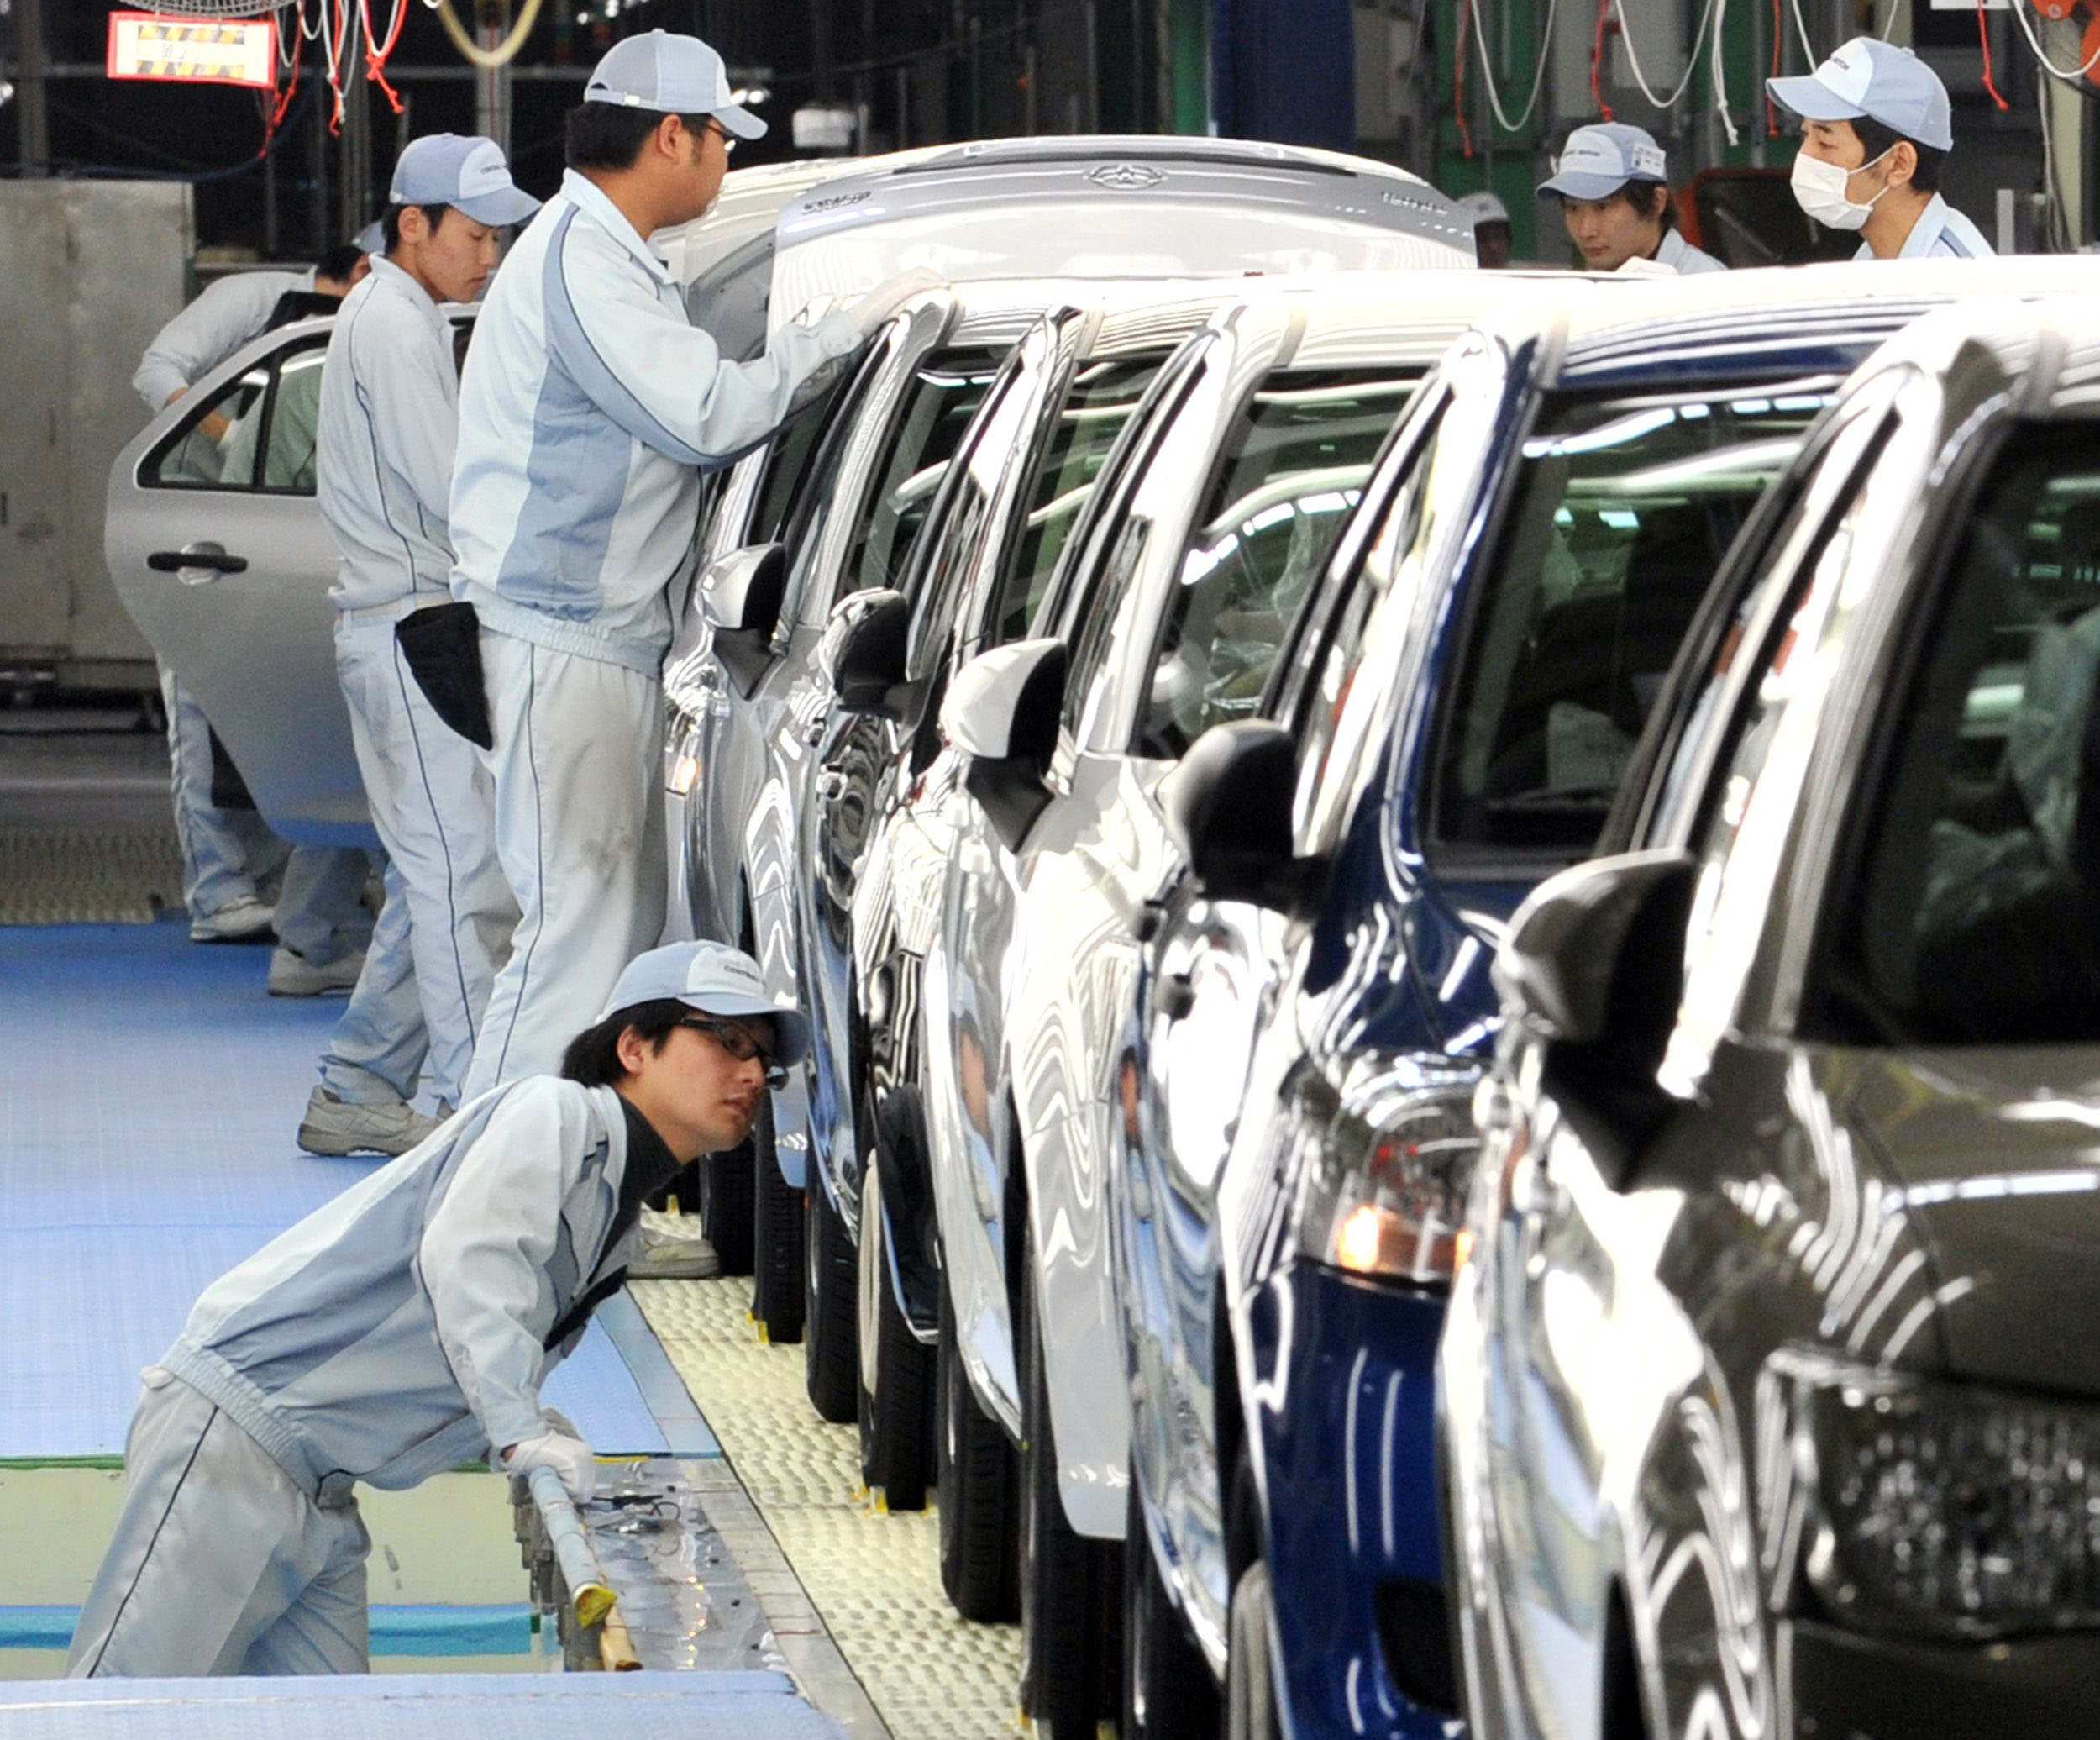 At Toyota, as cars roll off the assembly line, they go through a final inspection station staffed by astute visual and tactile inspectors.